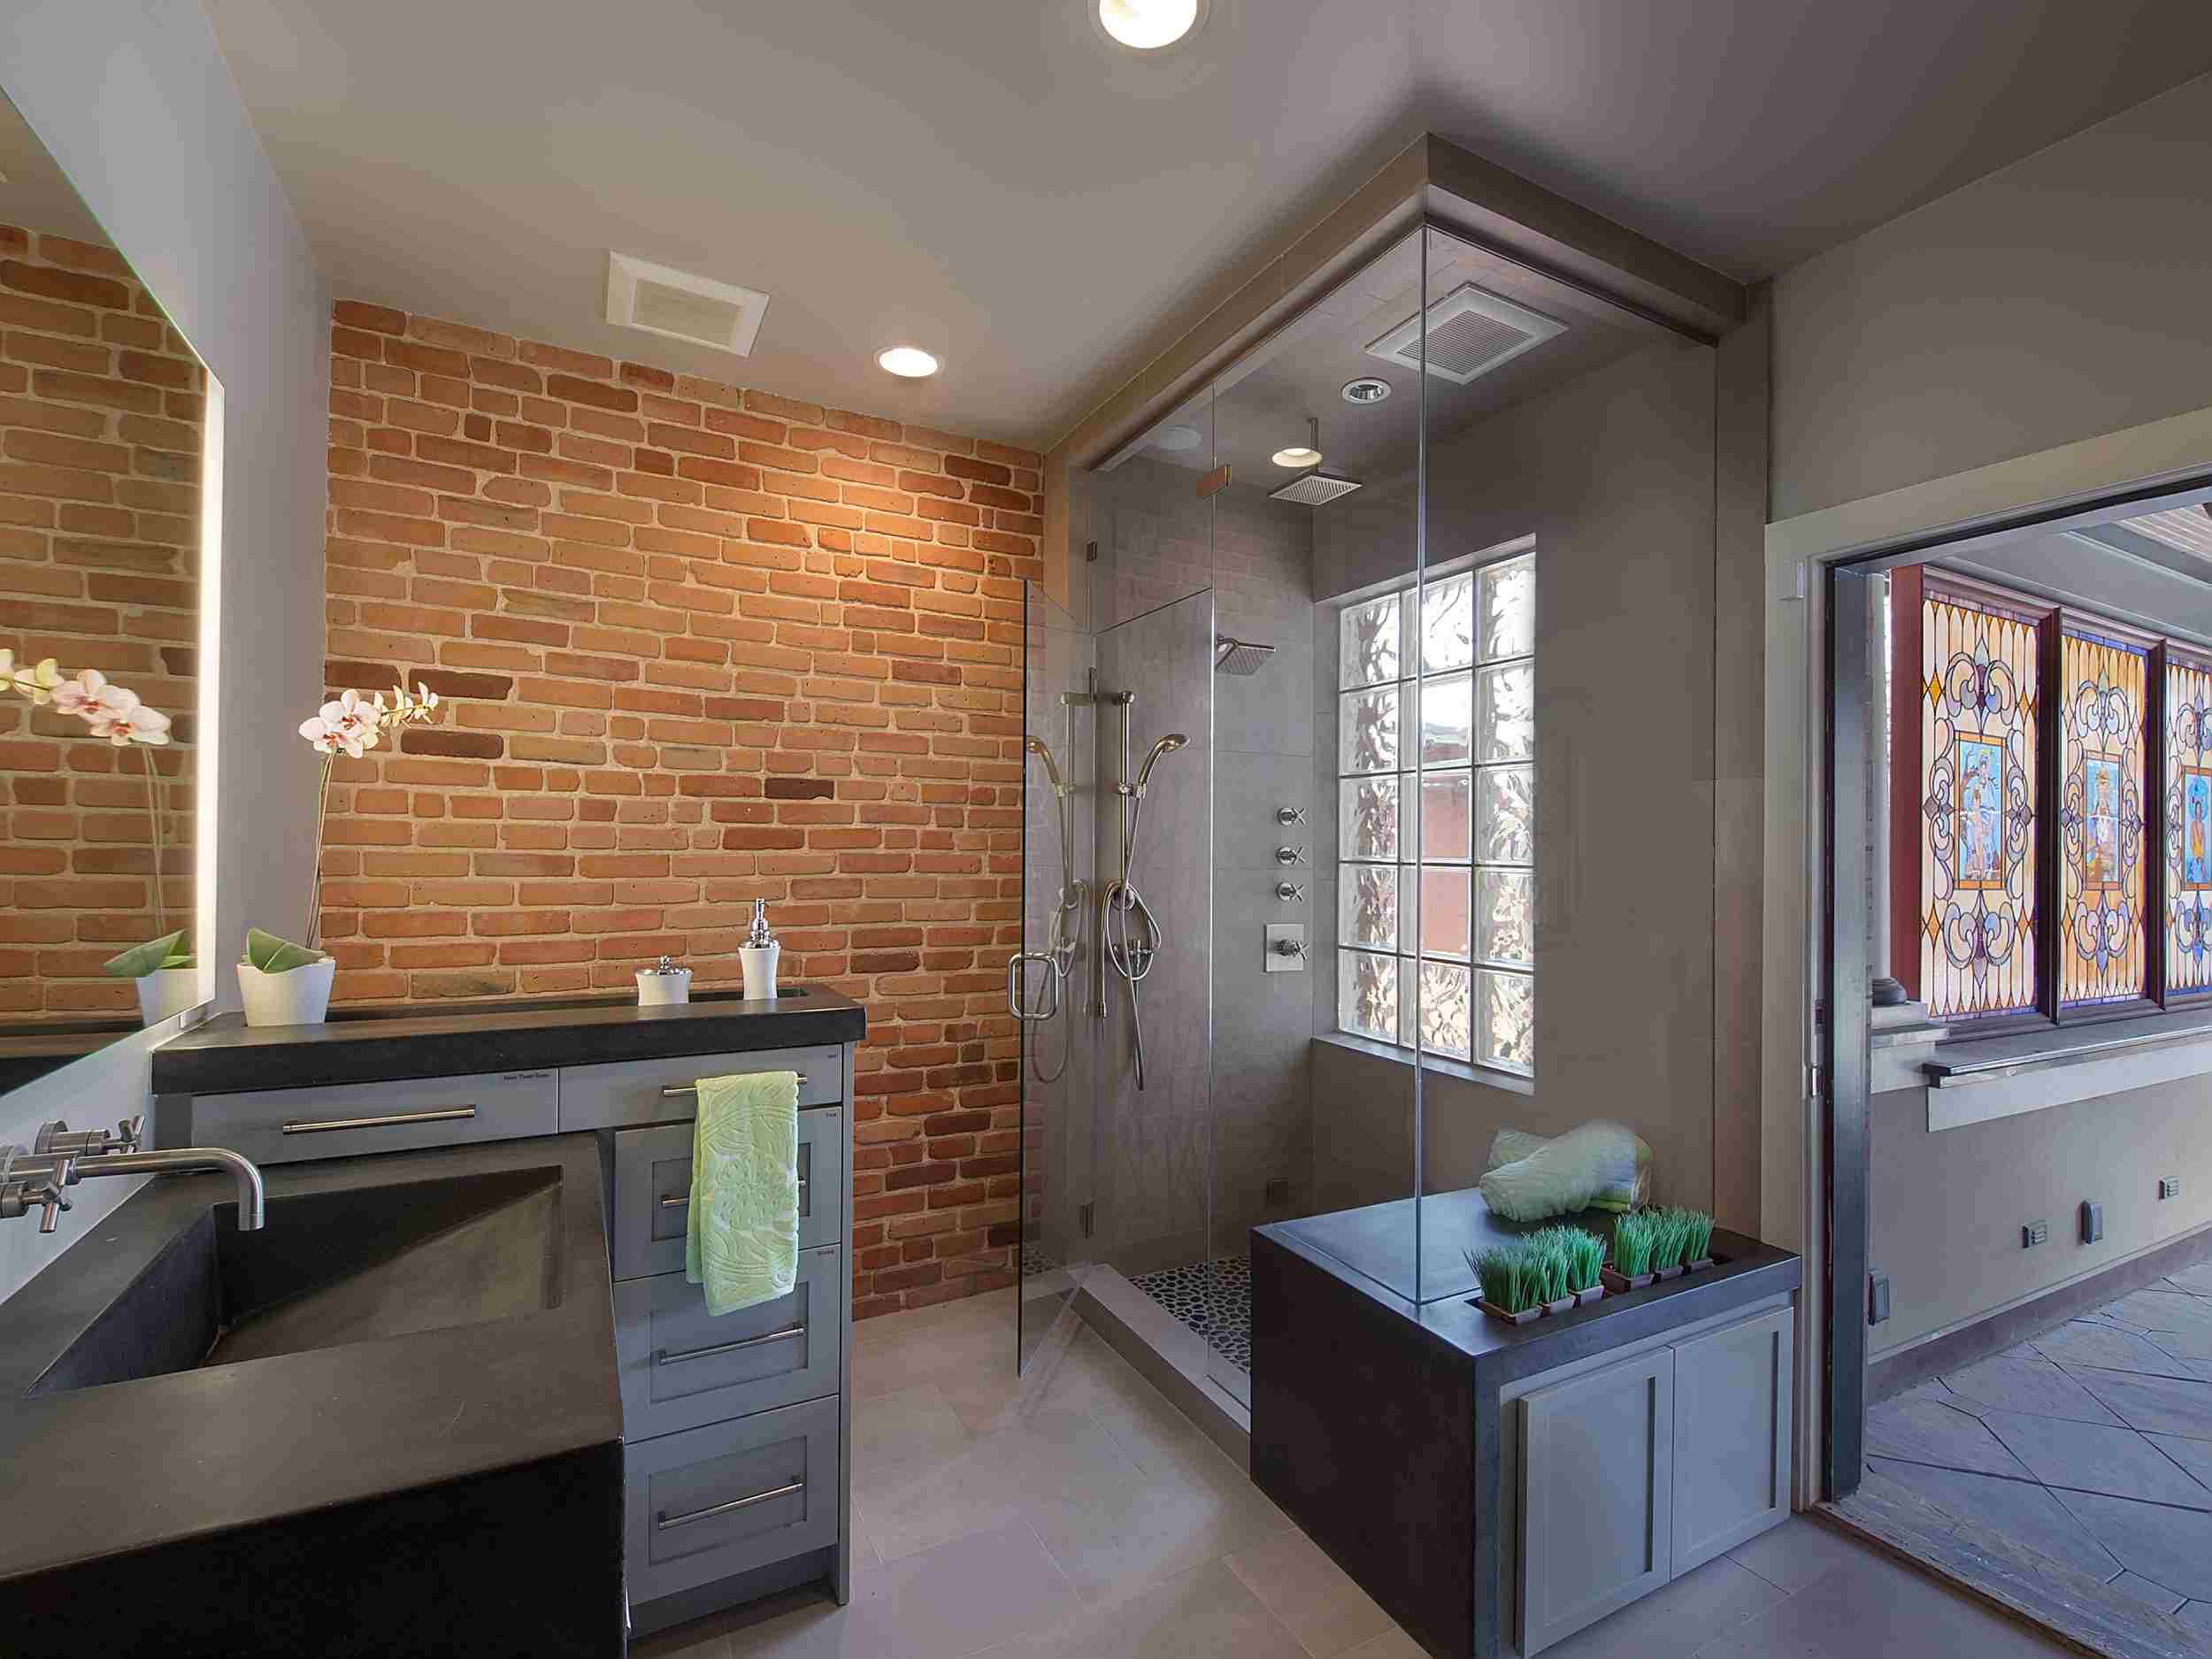 exposed brick and concrete — sanctuary kitchen and bath desi-1.jpg